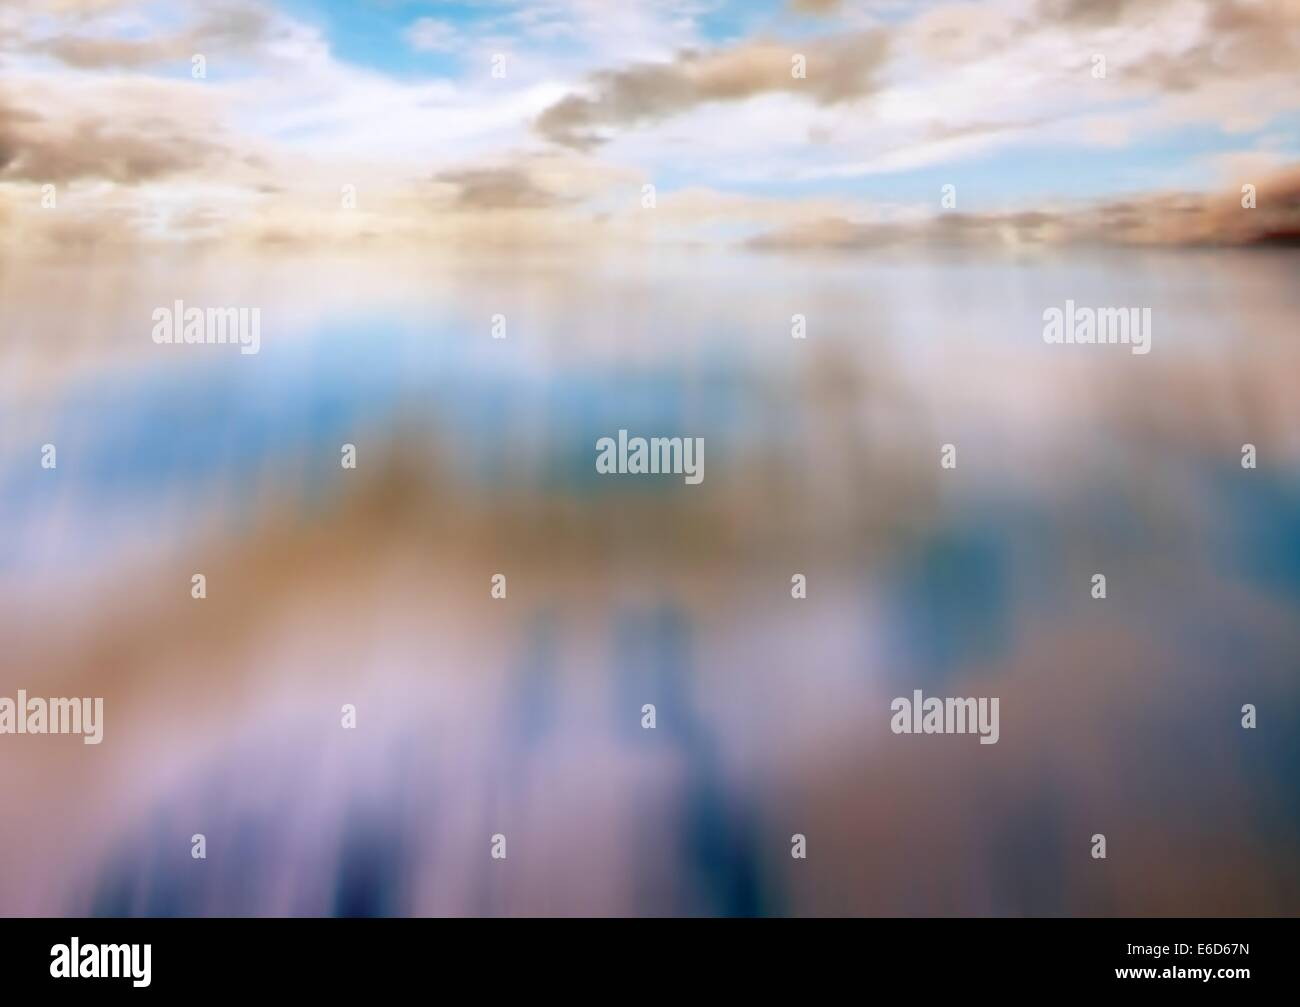 Editable vector illustration of a cloudy sky reflected in water - Stock Vector